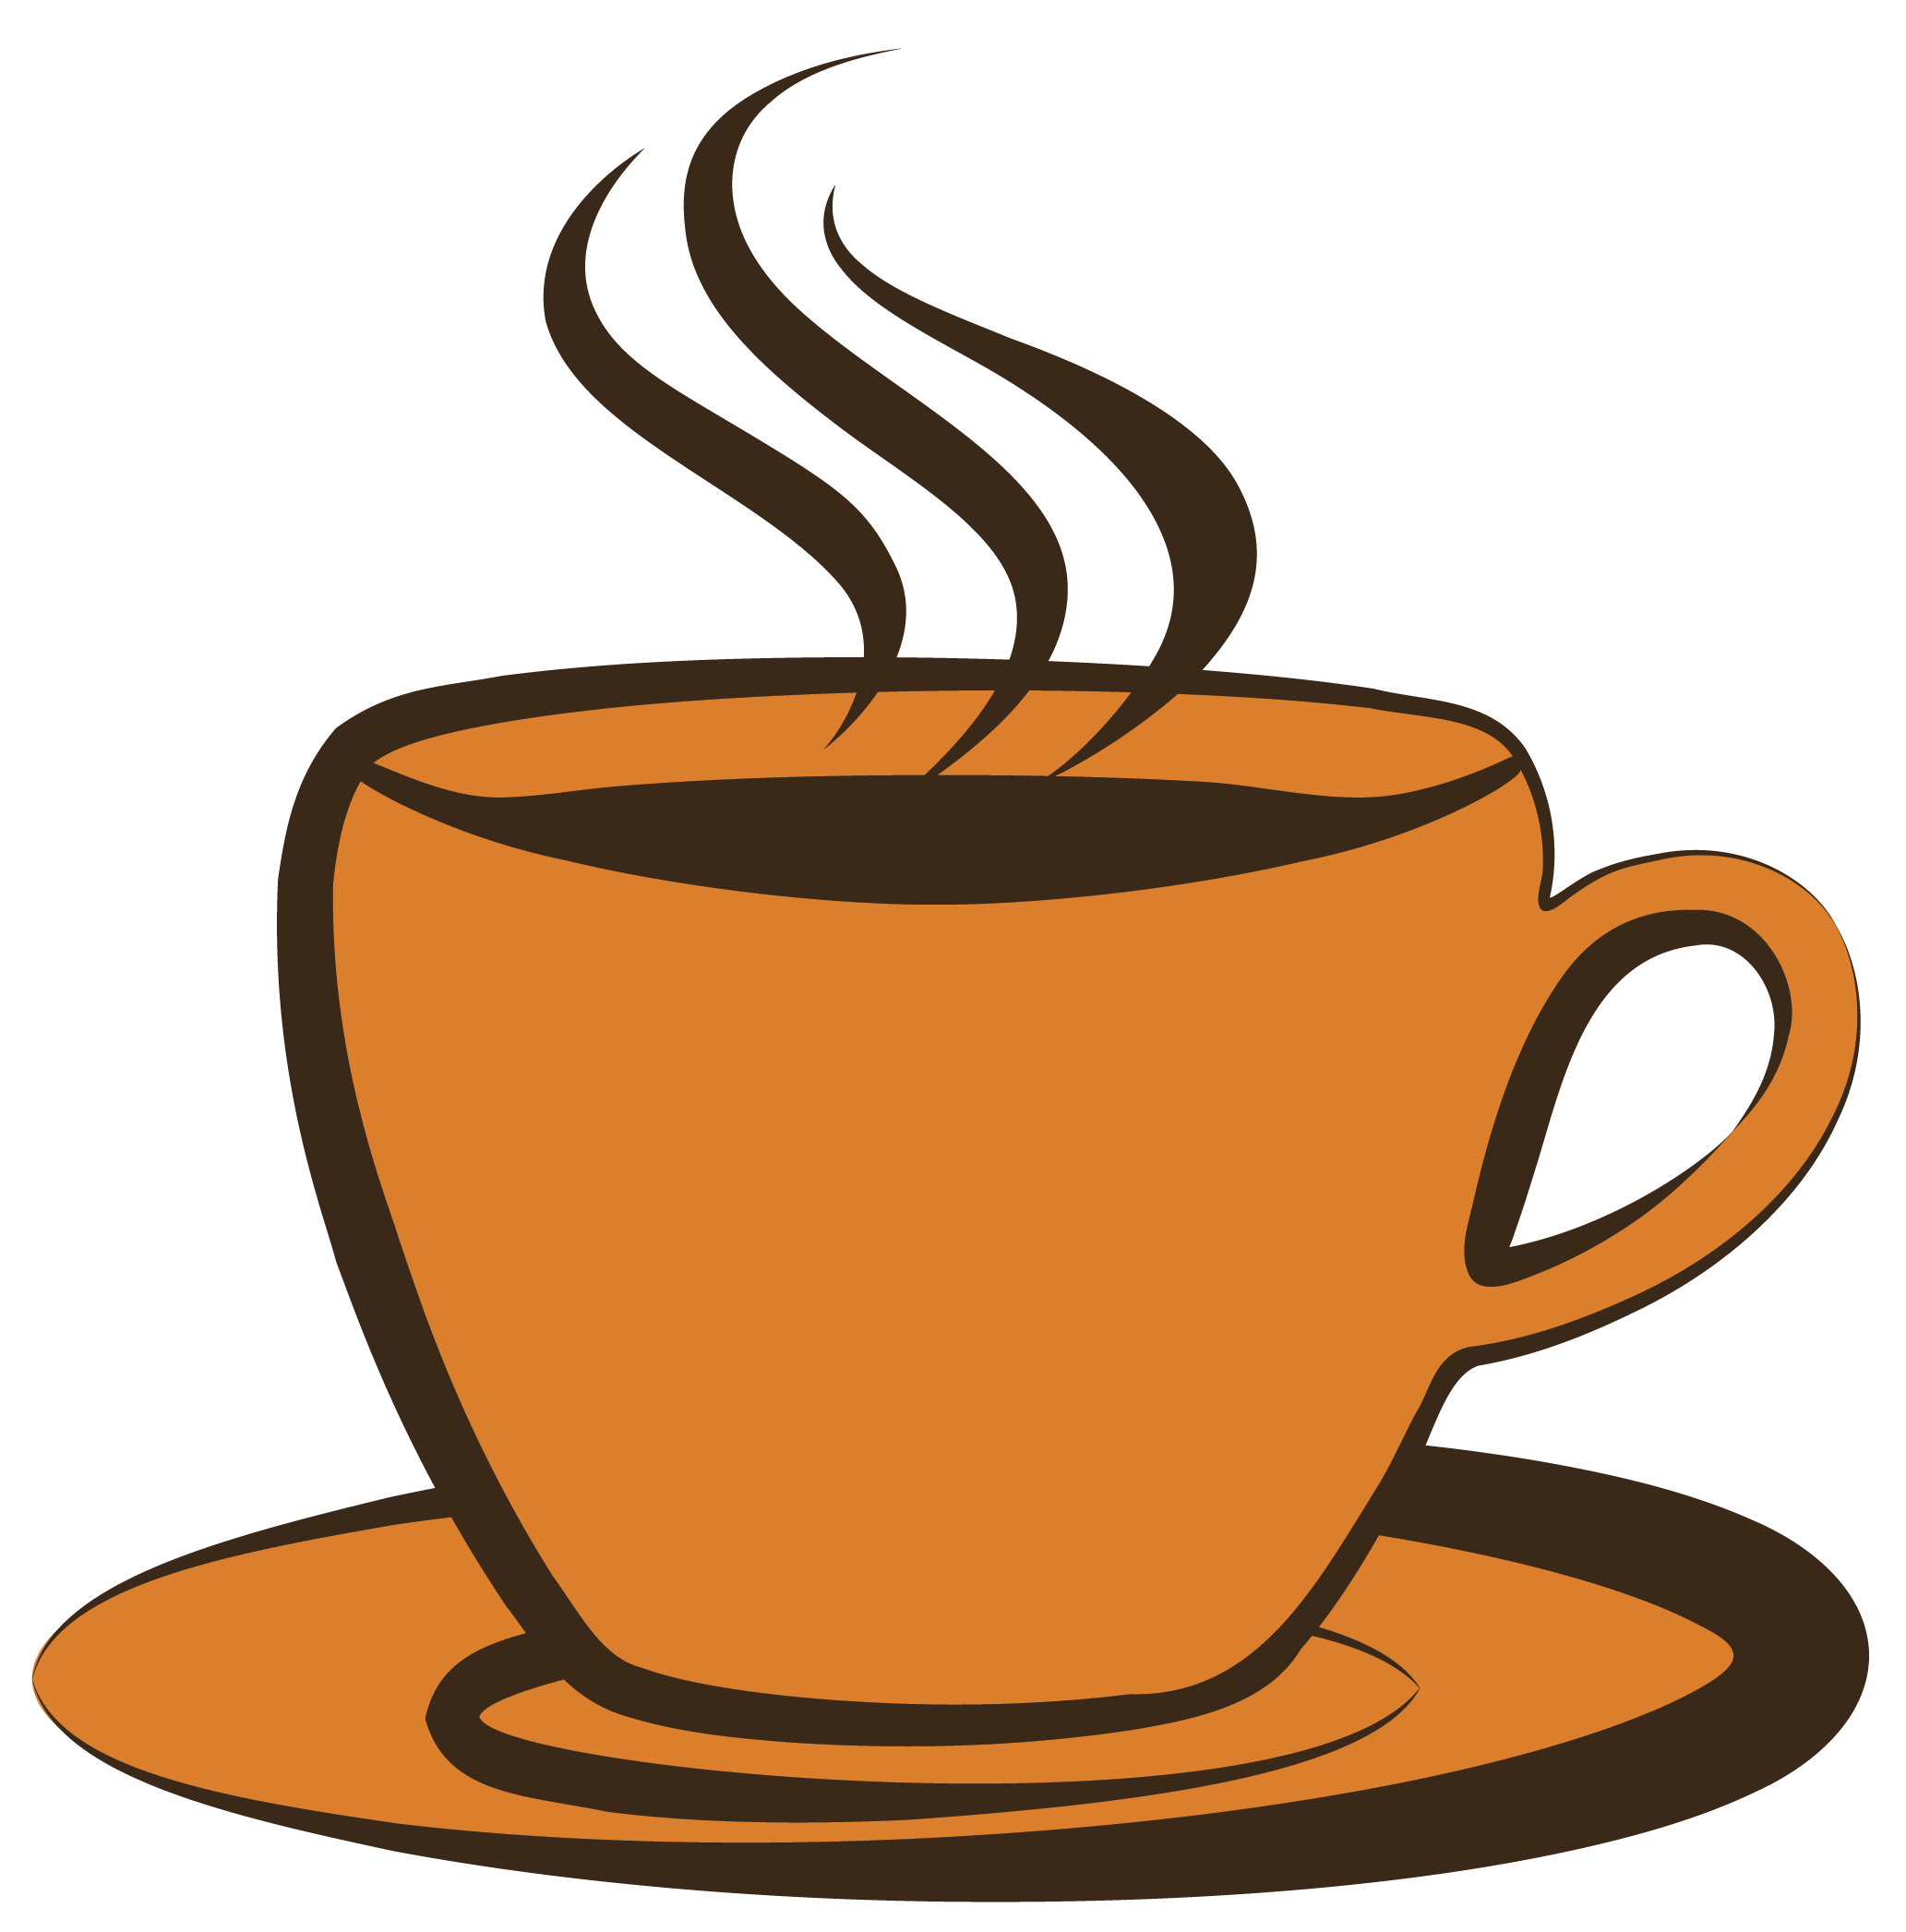 banner Cup images mugs clip. Steaming coffee mug clipart